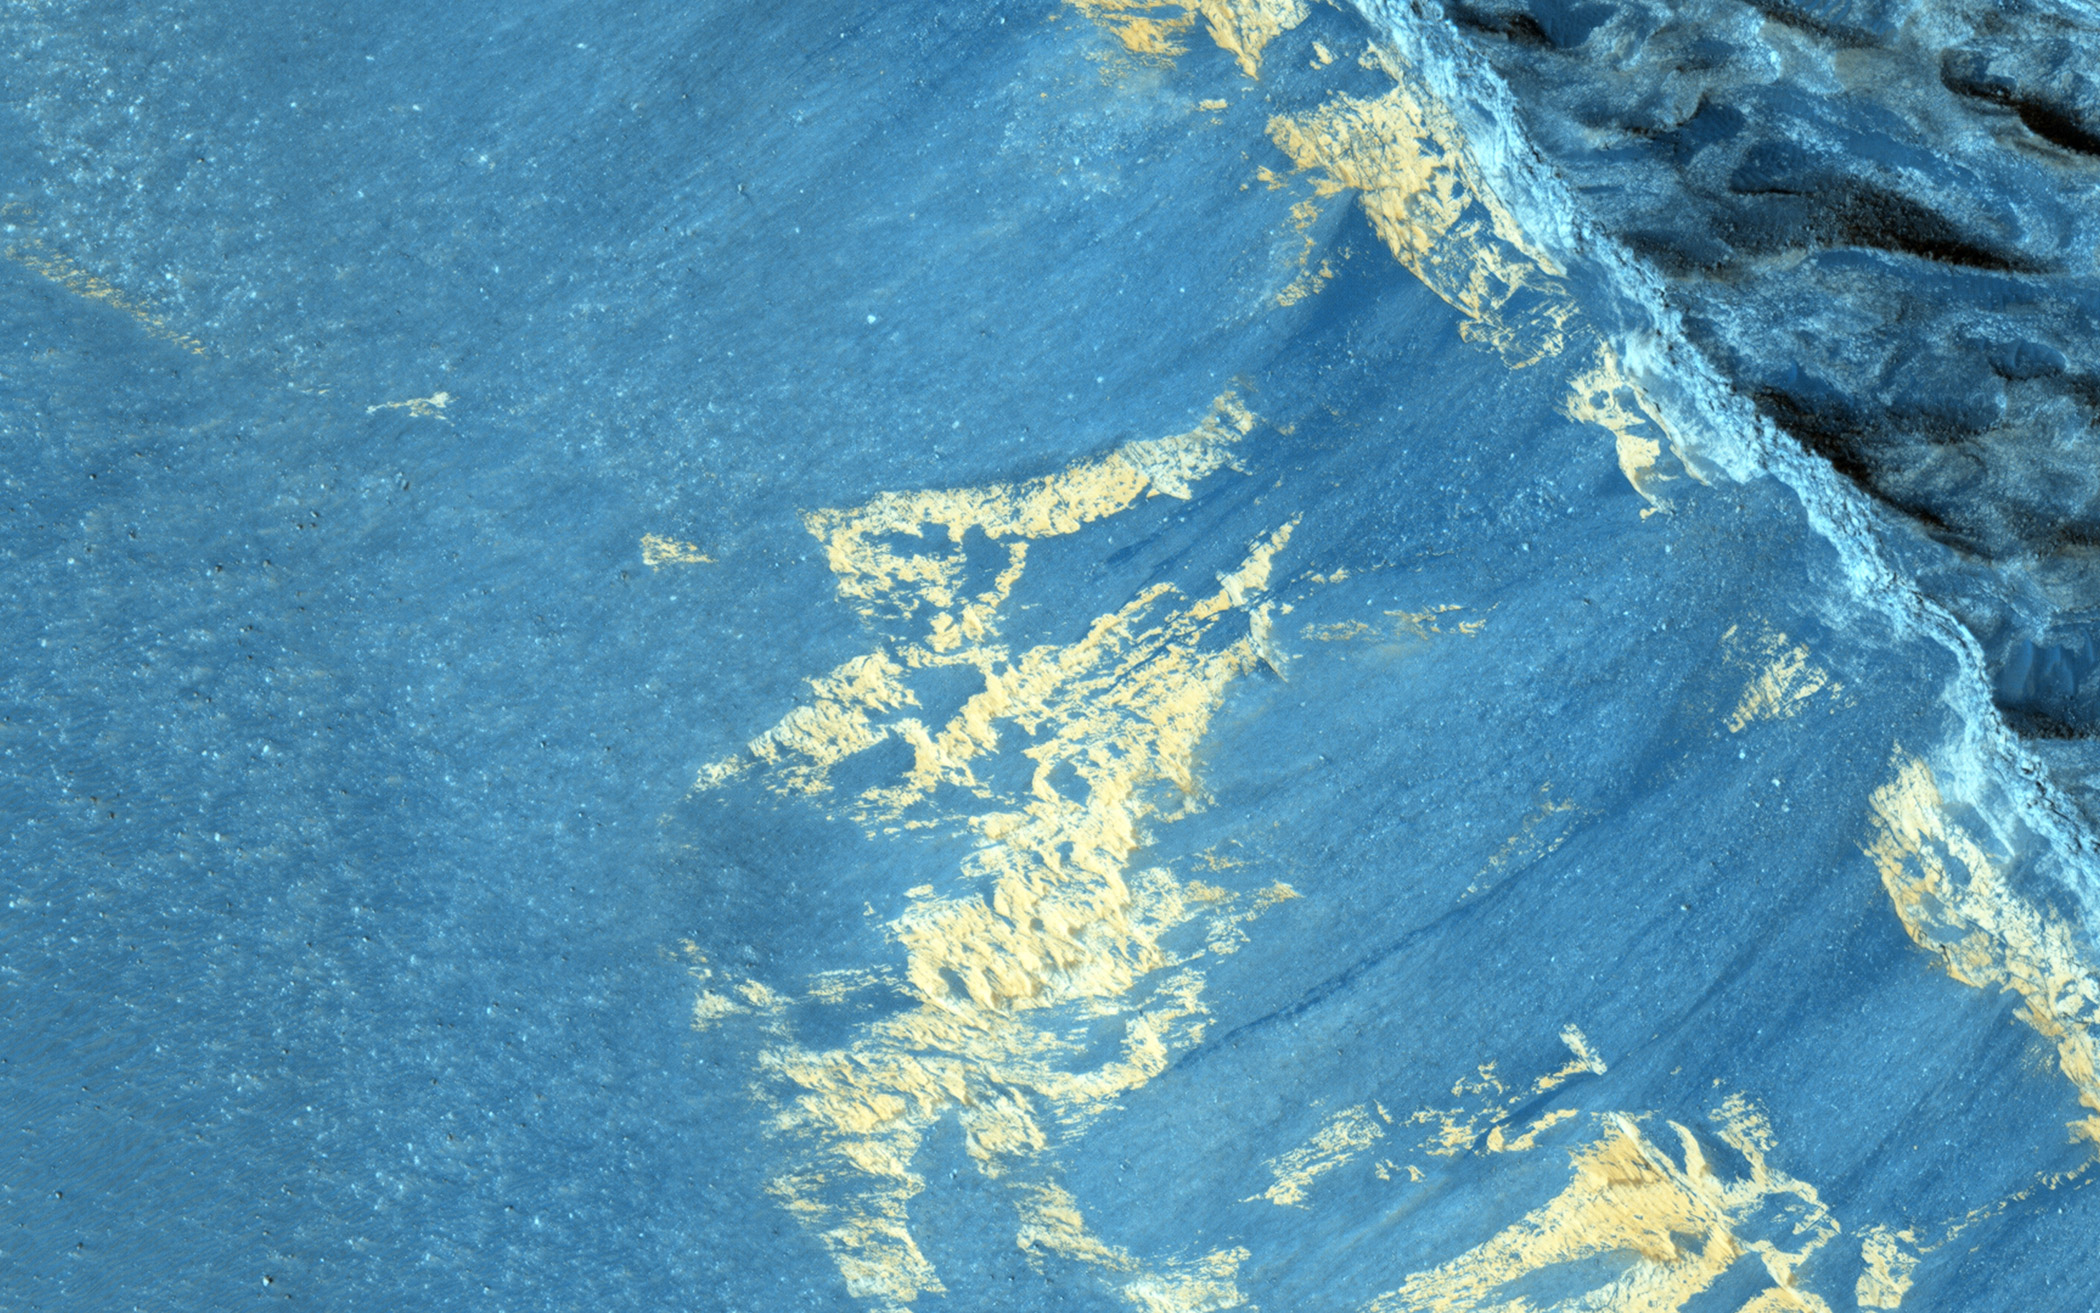 Recurring slope lineae (RSL) are a type of dark streak seen on Martian slopes and are thought to form from flow of liquid water.  This image shows RSL in the Aram Chaos, acquired on Jan. 11, 2015.